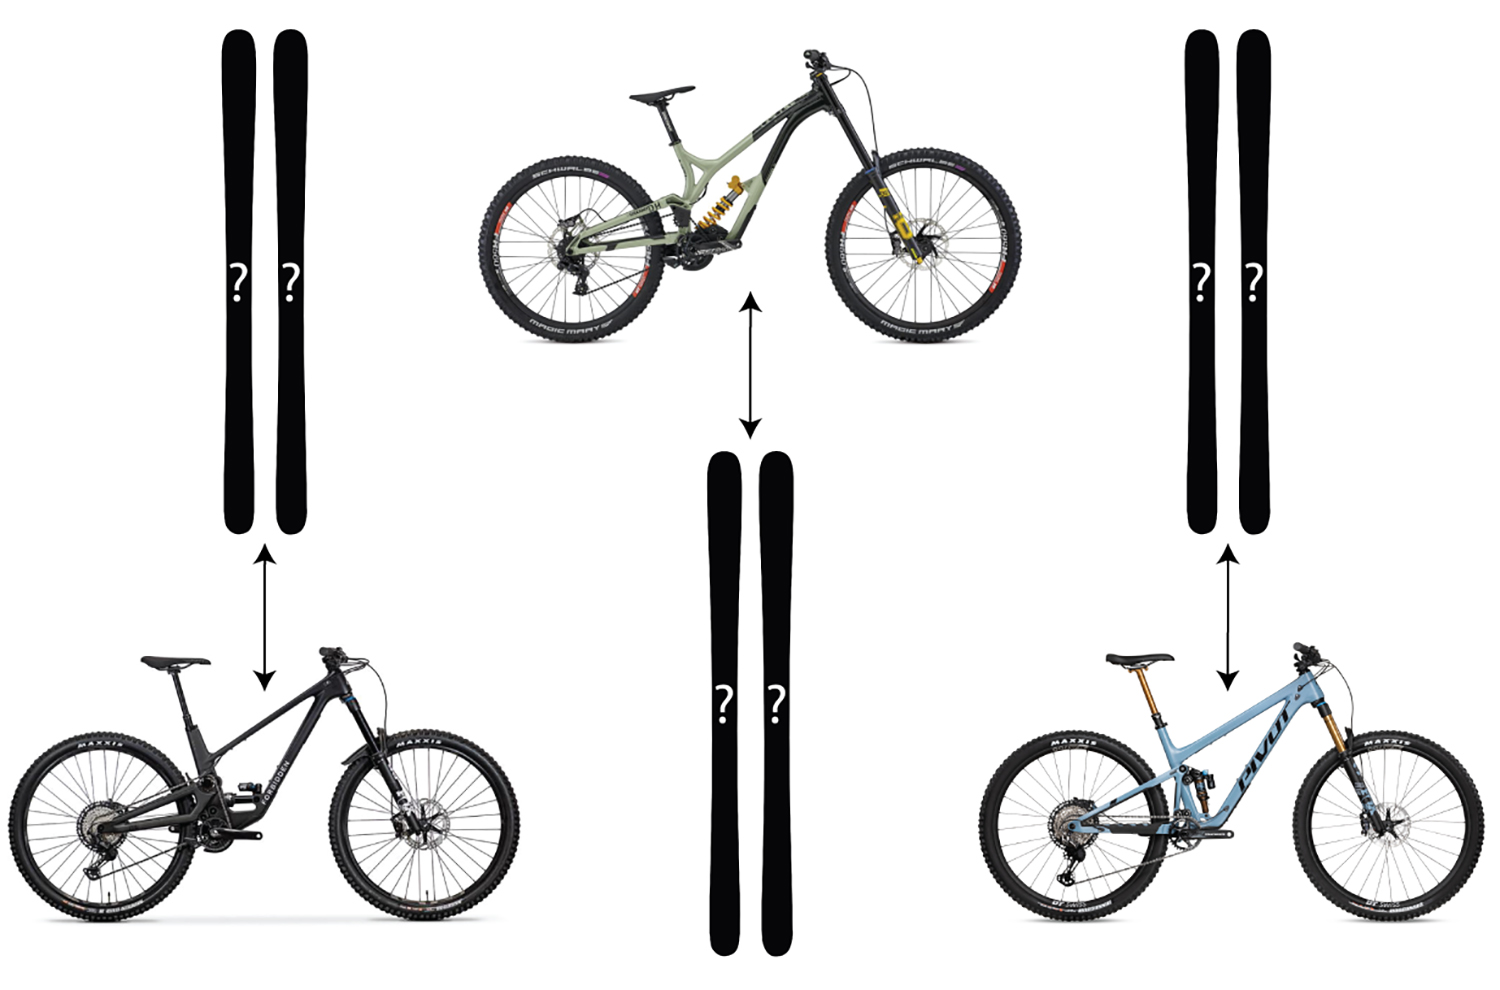 Which ski brand is most similar to Transition? Guerrilla Gravity? Specialized? Which bike company is most like K2? ON3P? Moment? We answer all of these questions and more in Part 2 of Bikes vs. Skis. Check it out, and tell us your answers to these questions in the comments section.